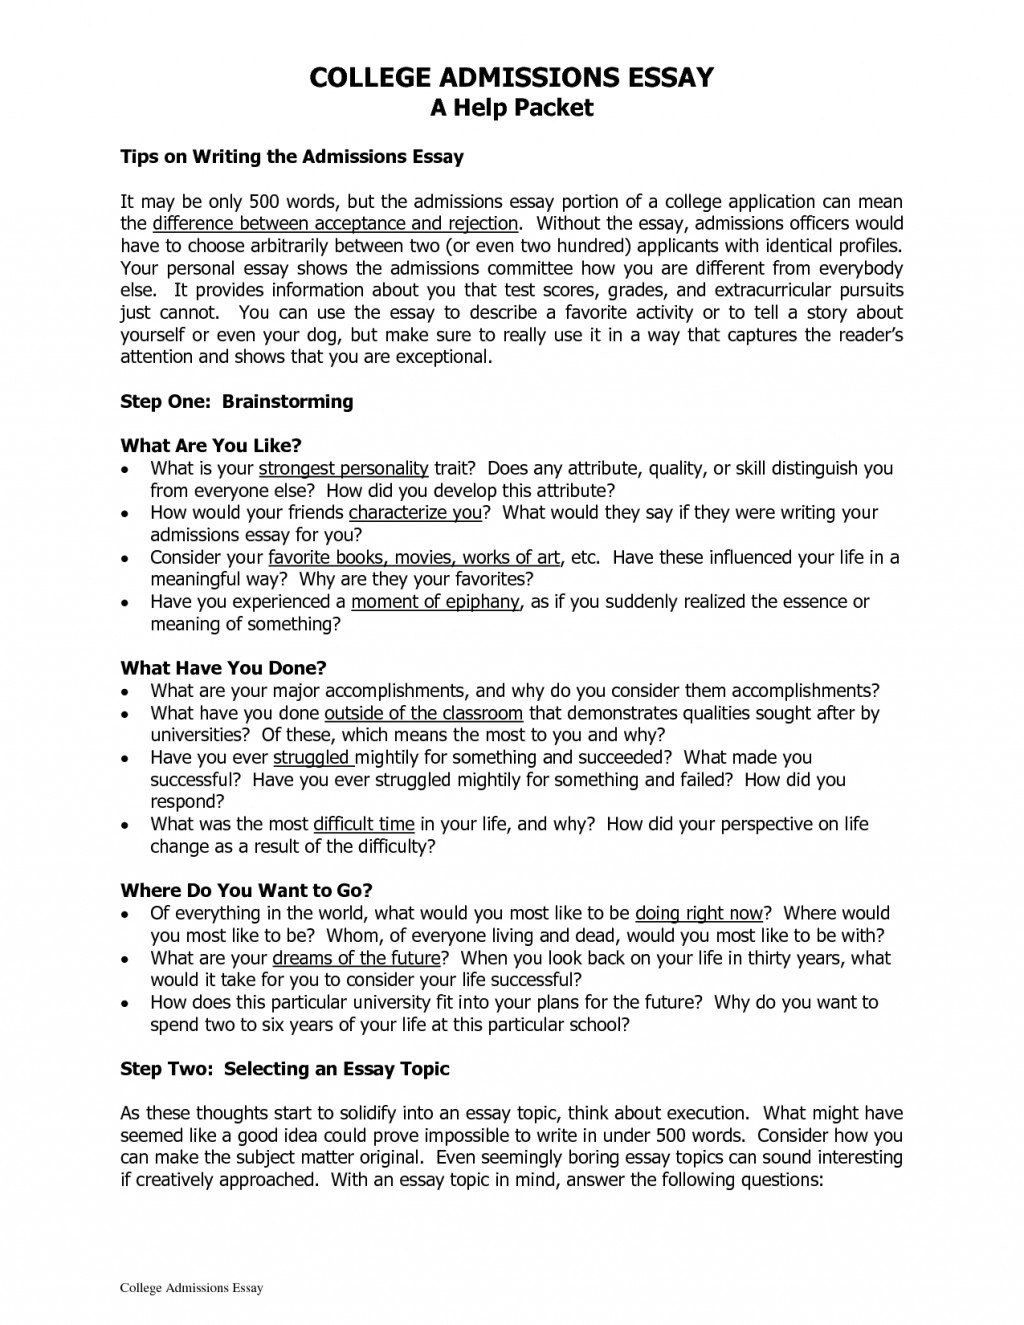 005 Essay Example Writing College Application Rare A Topics To Write On Tips For About Yourself Large